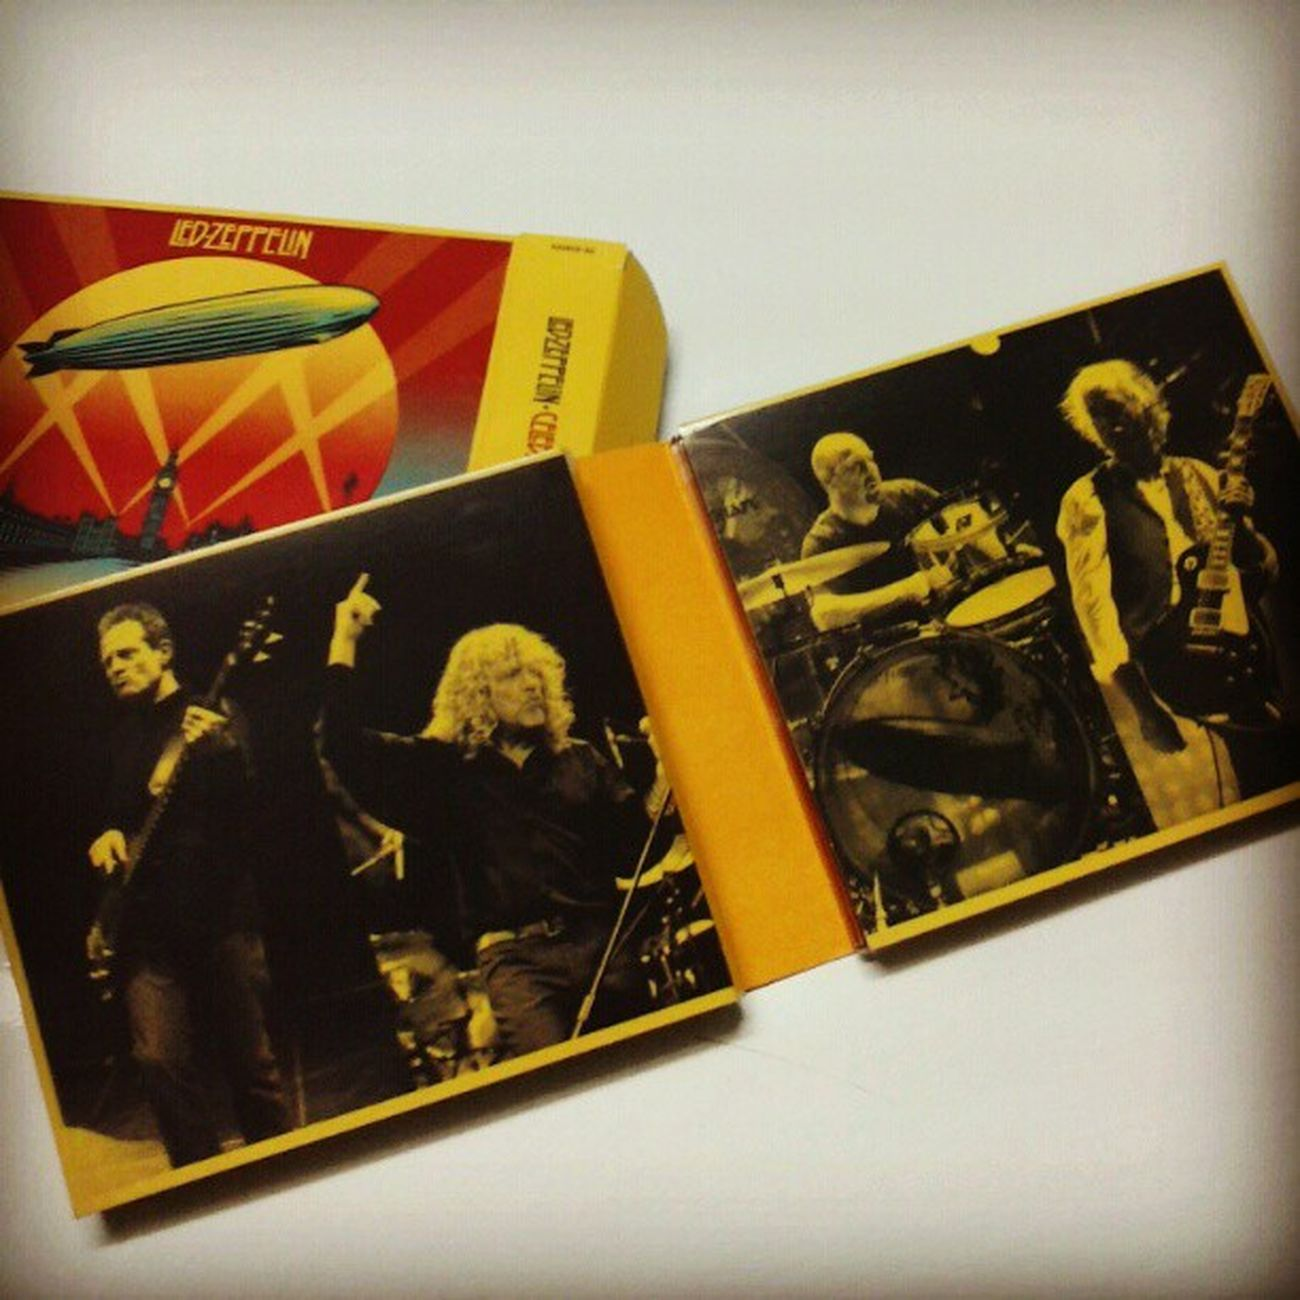 Celebrationday Johnpauljones Robertplant Jasonbonham jimmypage